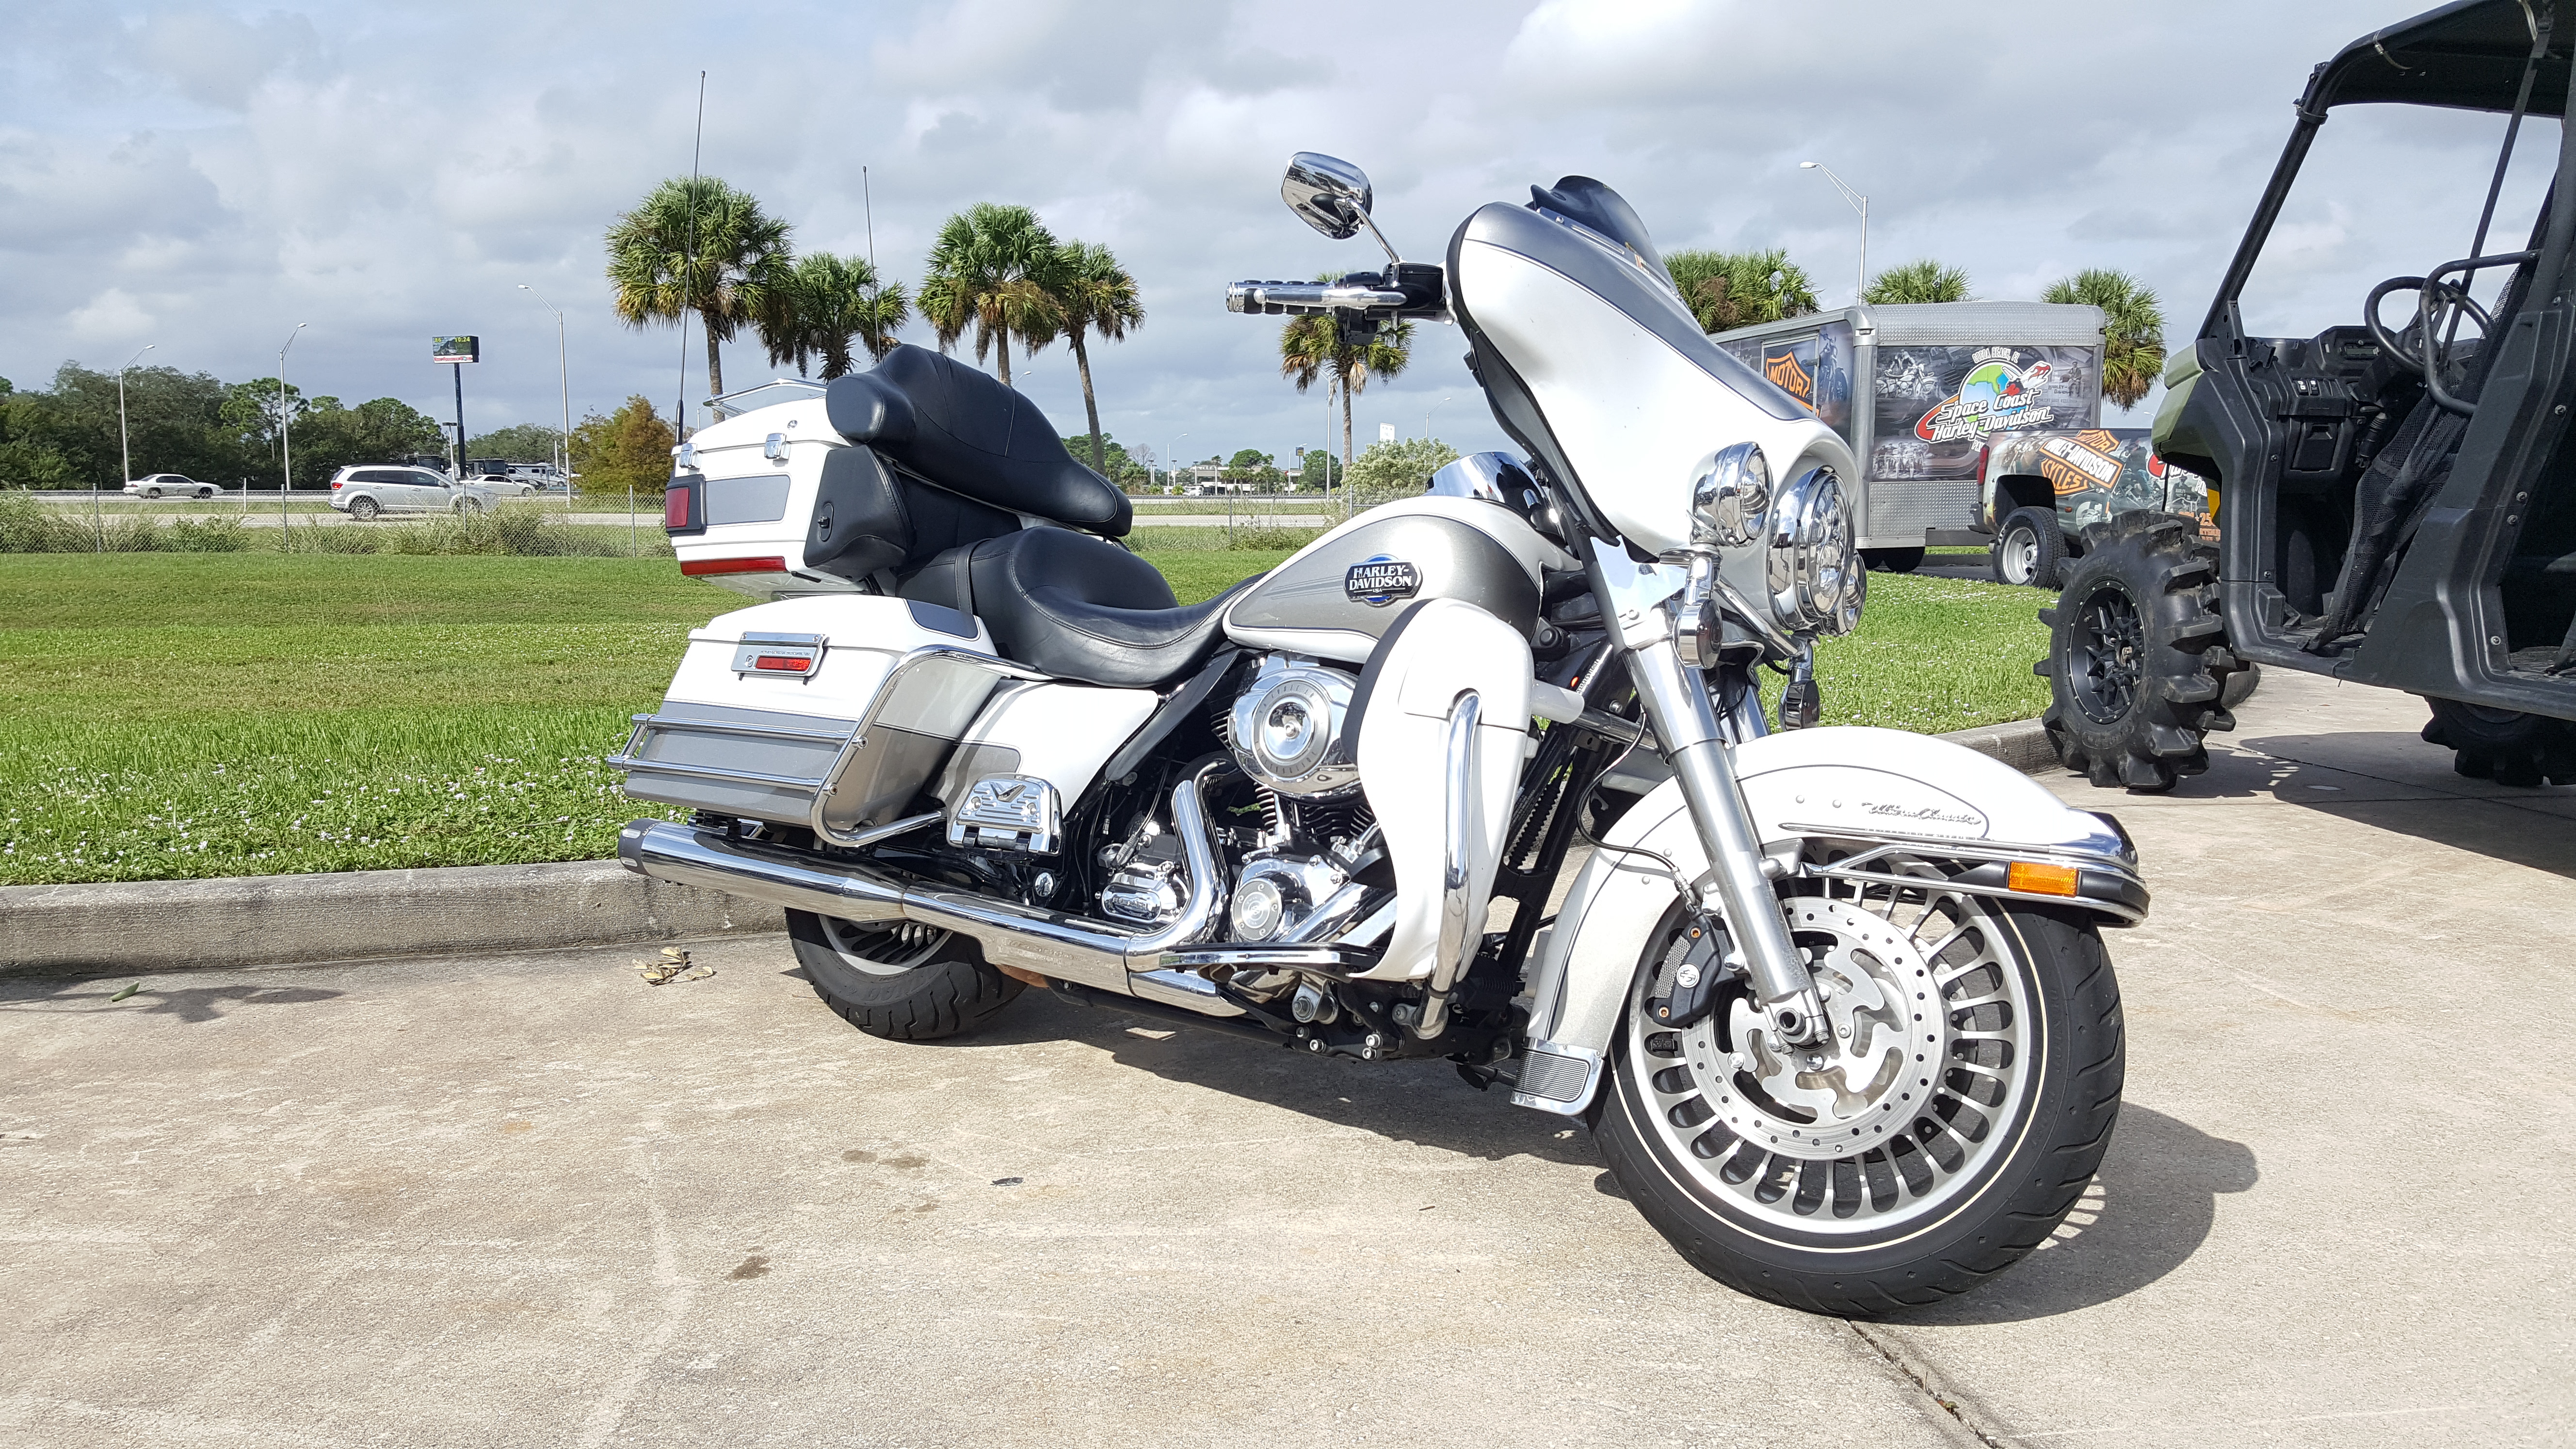 Pre-Owned 2009 Harley-Davidson Electra Glide Ultra Classic